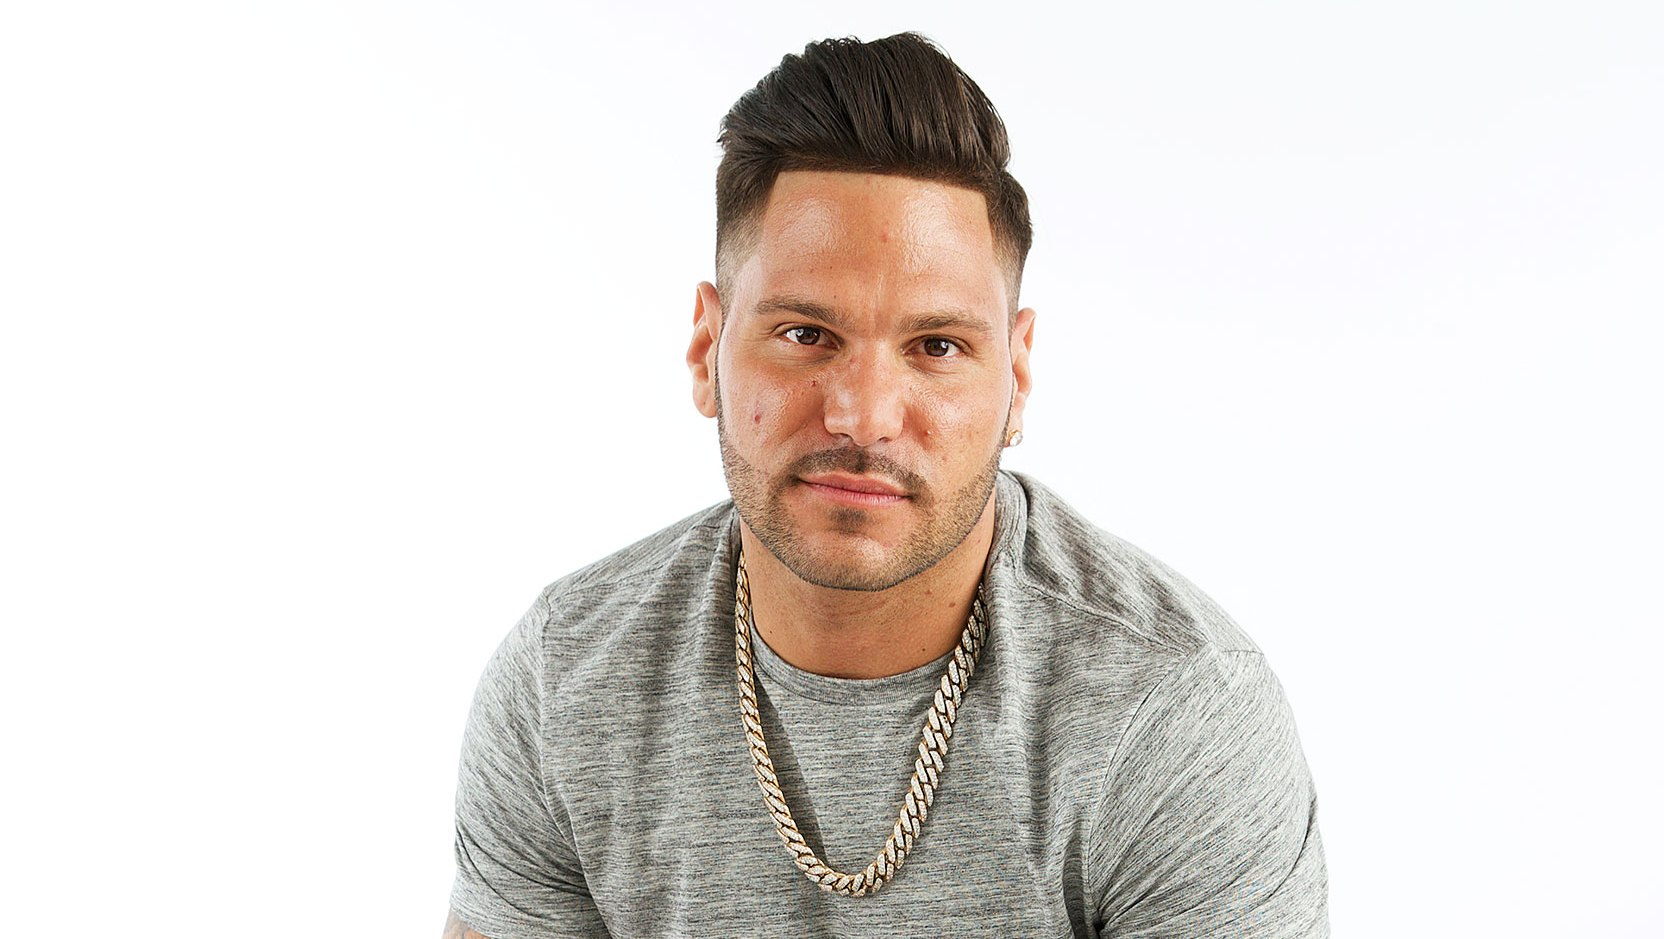 Jersey Shore's Ronnie Ortiz-Magro: 'Self-Care,' 'Going to the Gym' Help Me Stay Sober